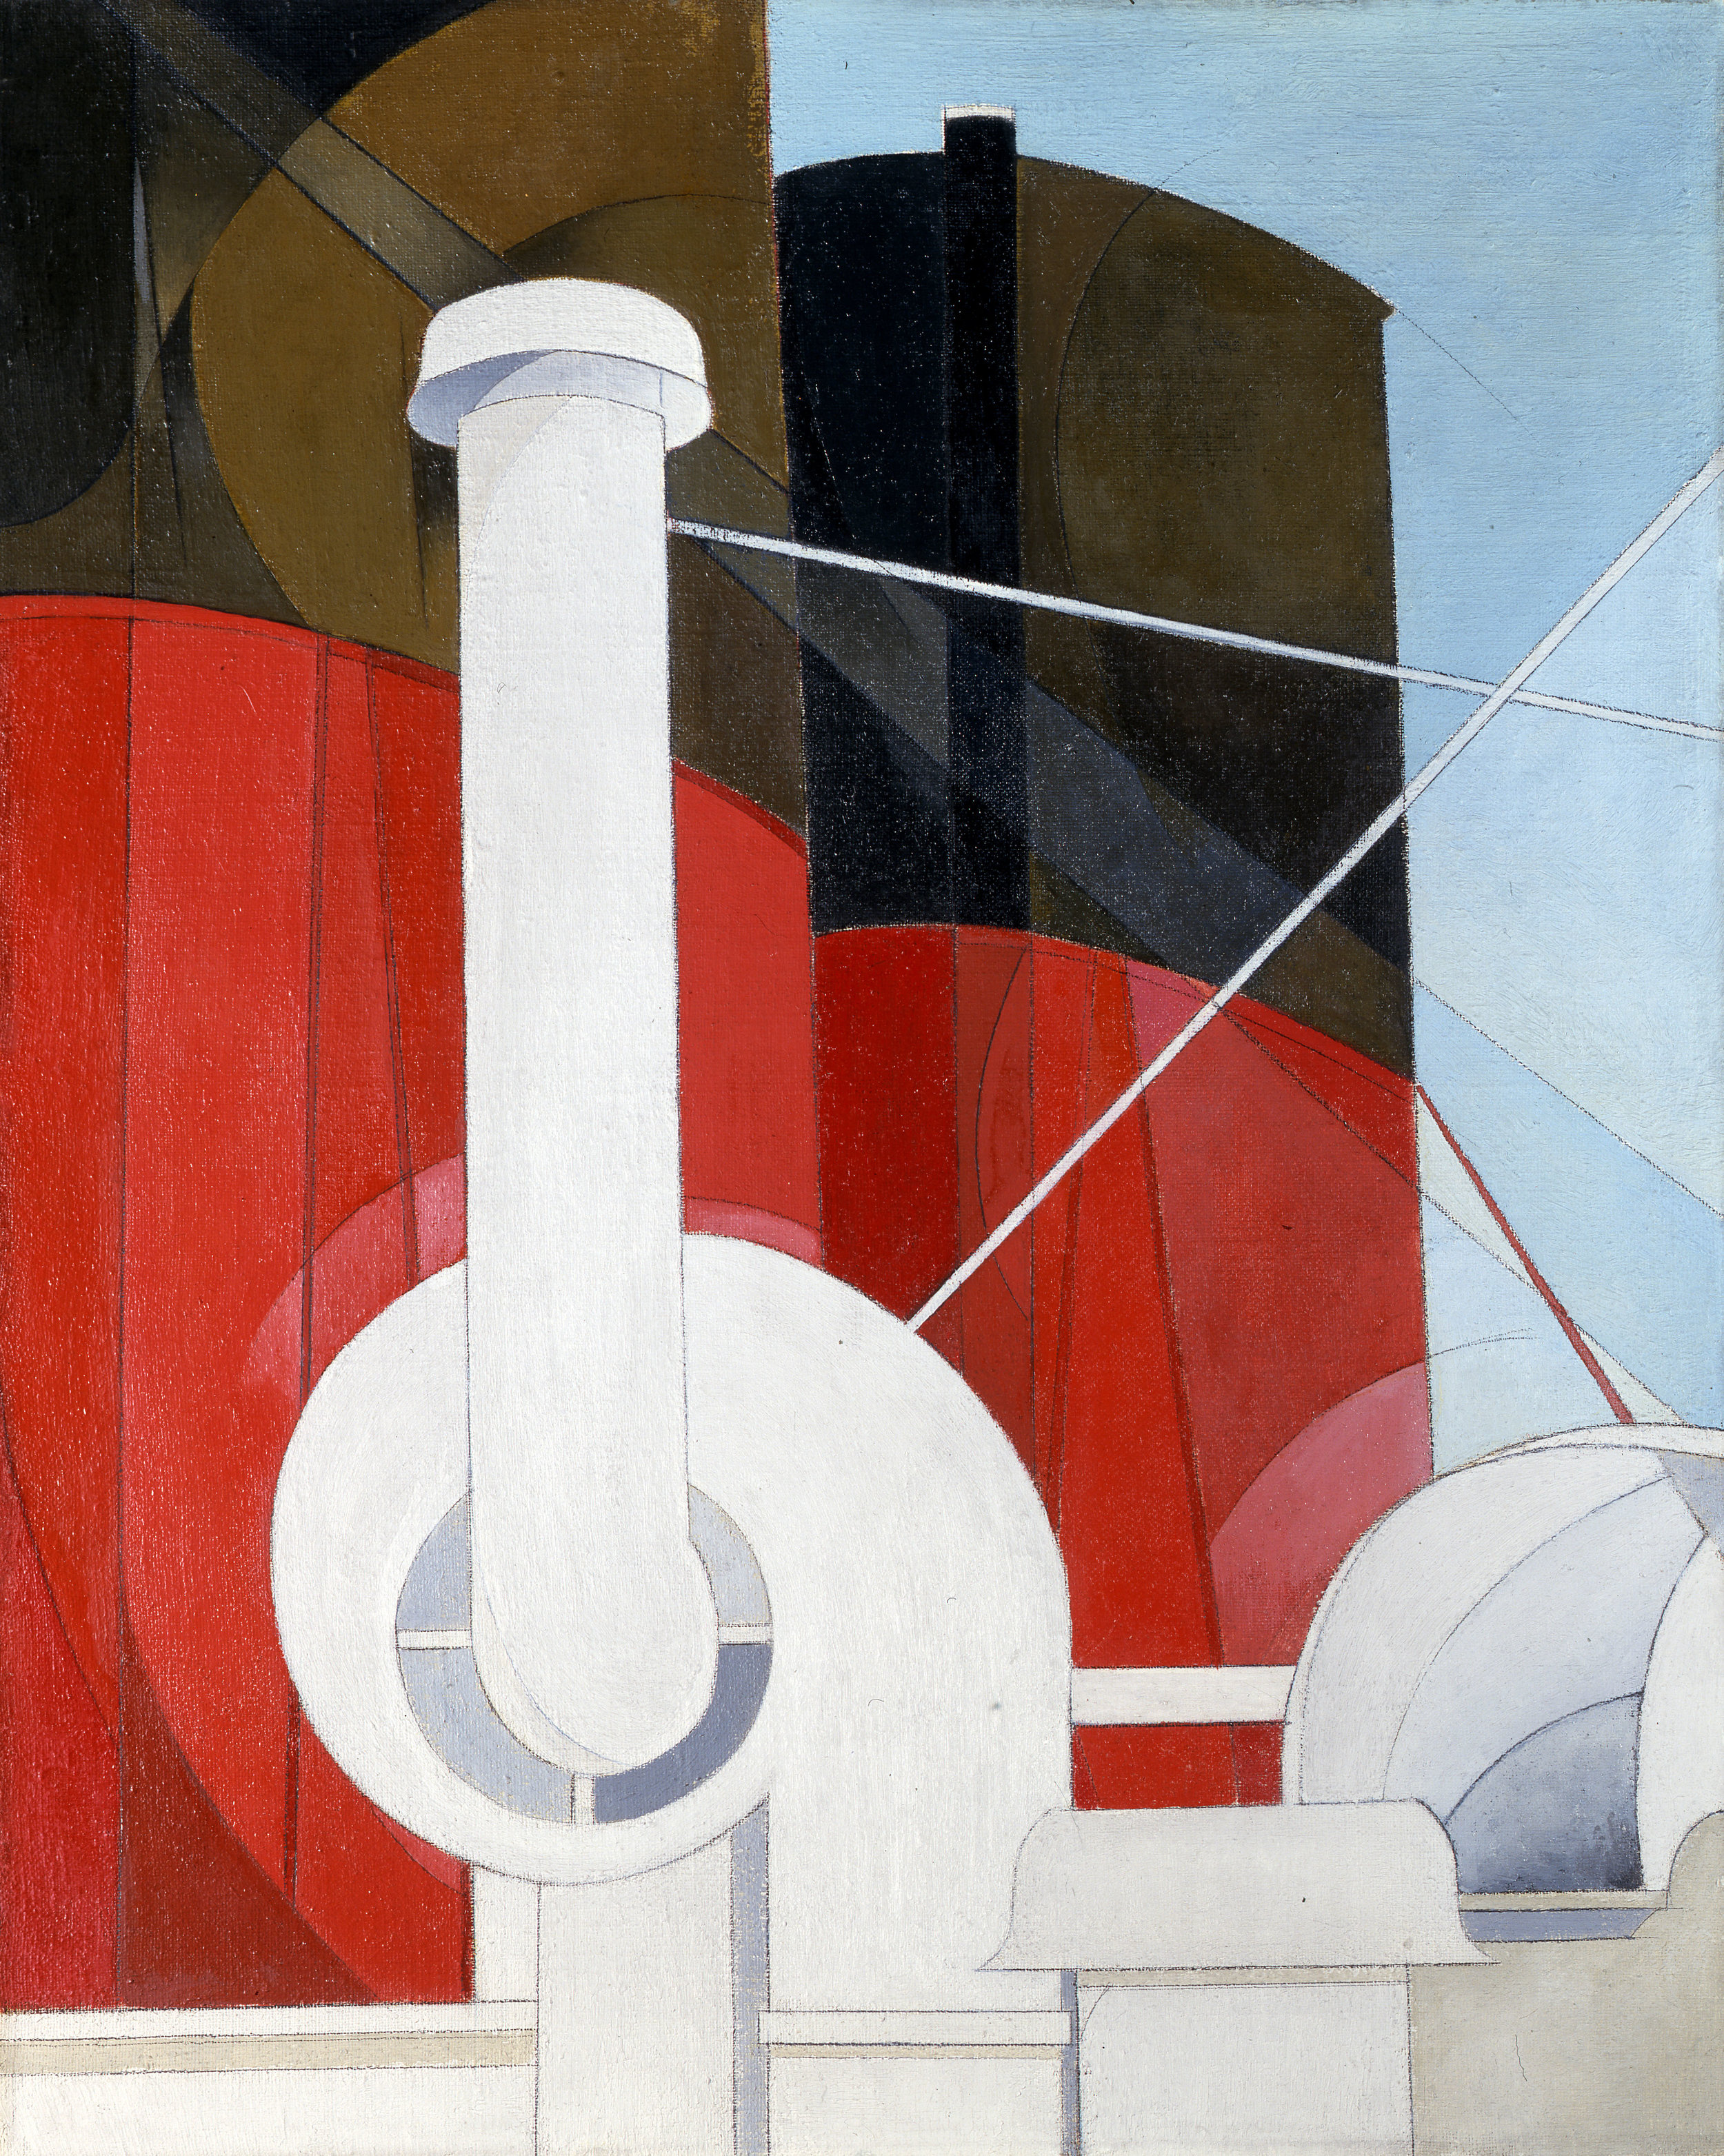 Paquebot 'Paris', Charles Demuth, United States, 1921 -22. Gift of Ferdinand Howald © Columbus Museum of Art, Ohio